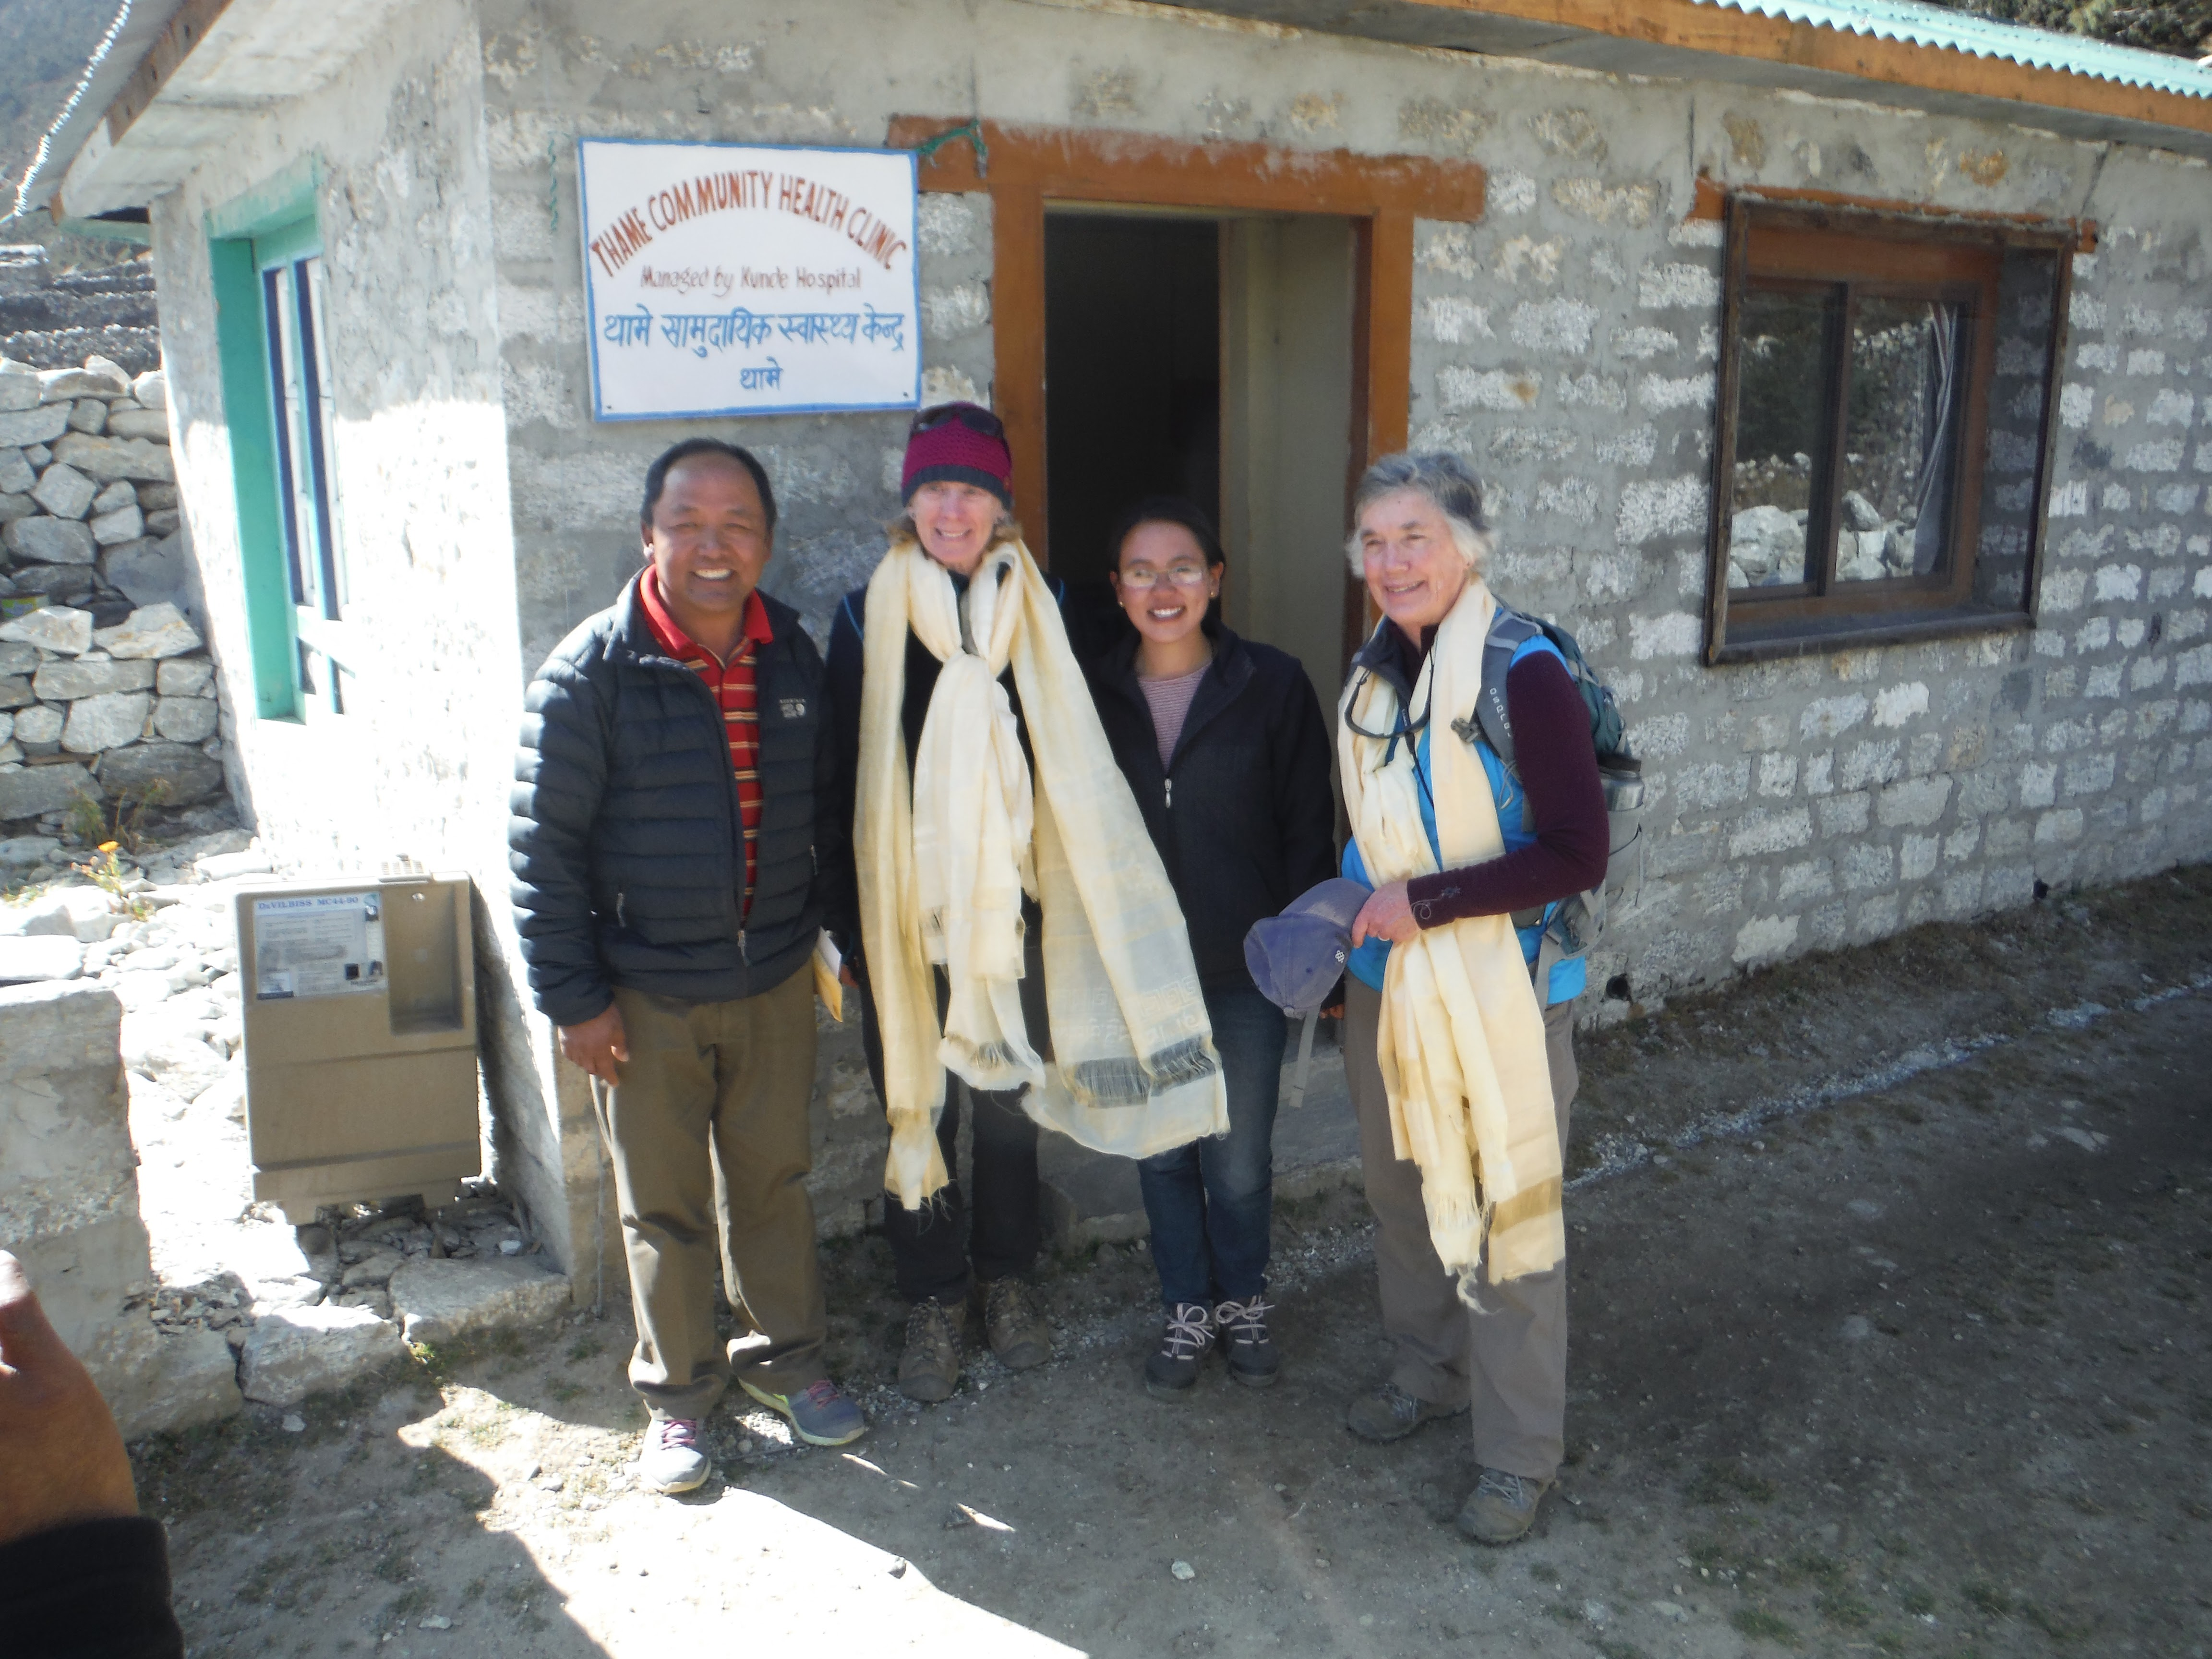 Denise Coriell and Leeli Bonney of the Tara Foundation USA at the Thame Clinic after it was rebuilt with Dr. Kami Sherpa and another health worker from the facility.